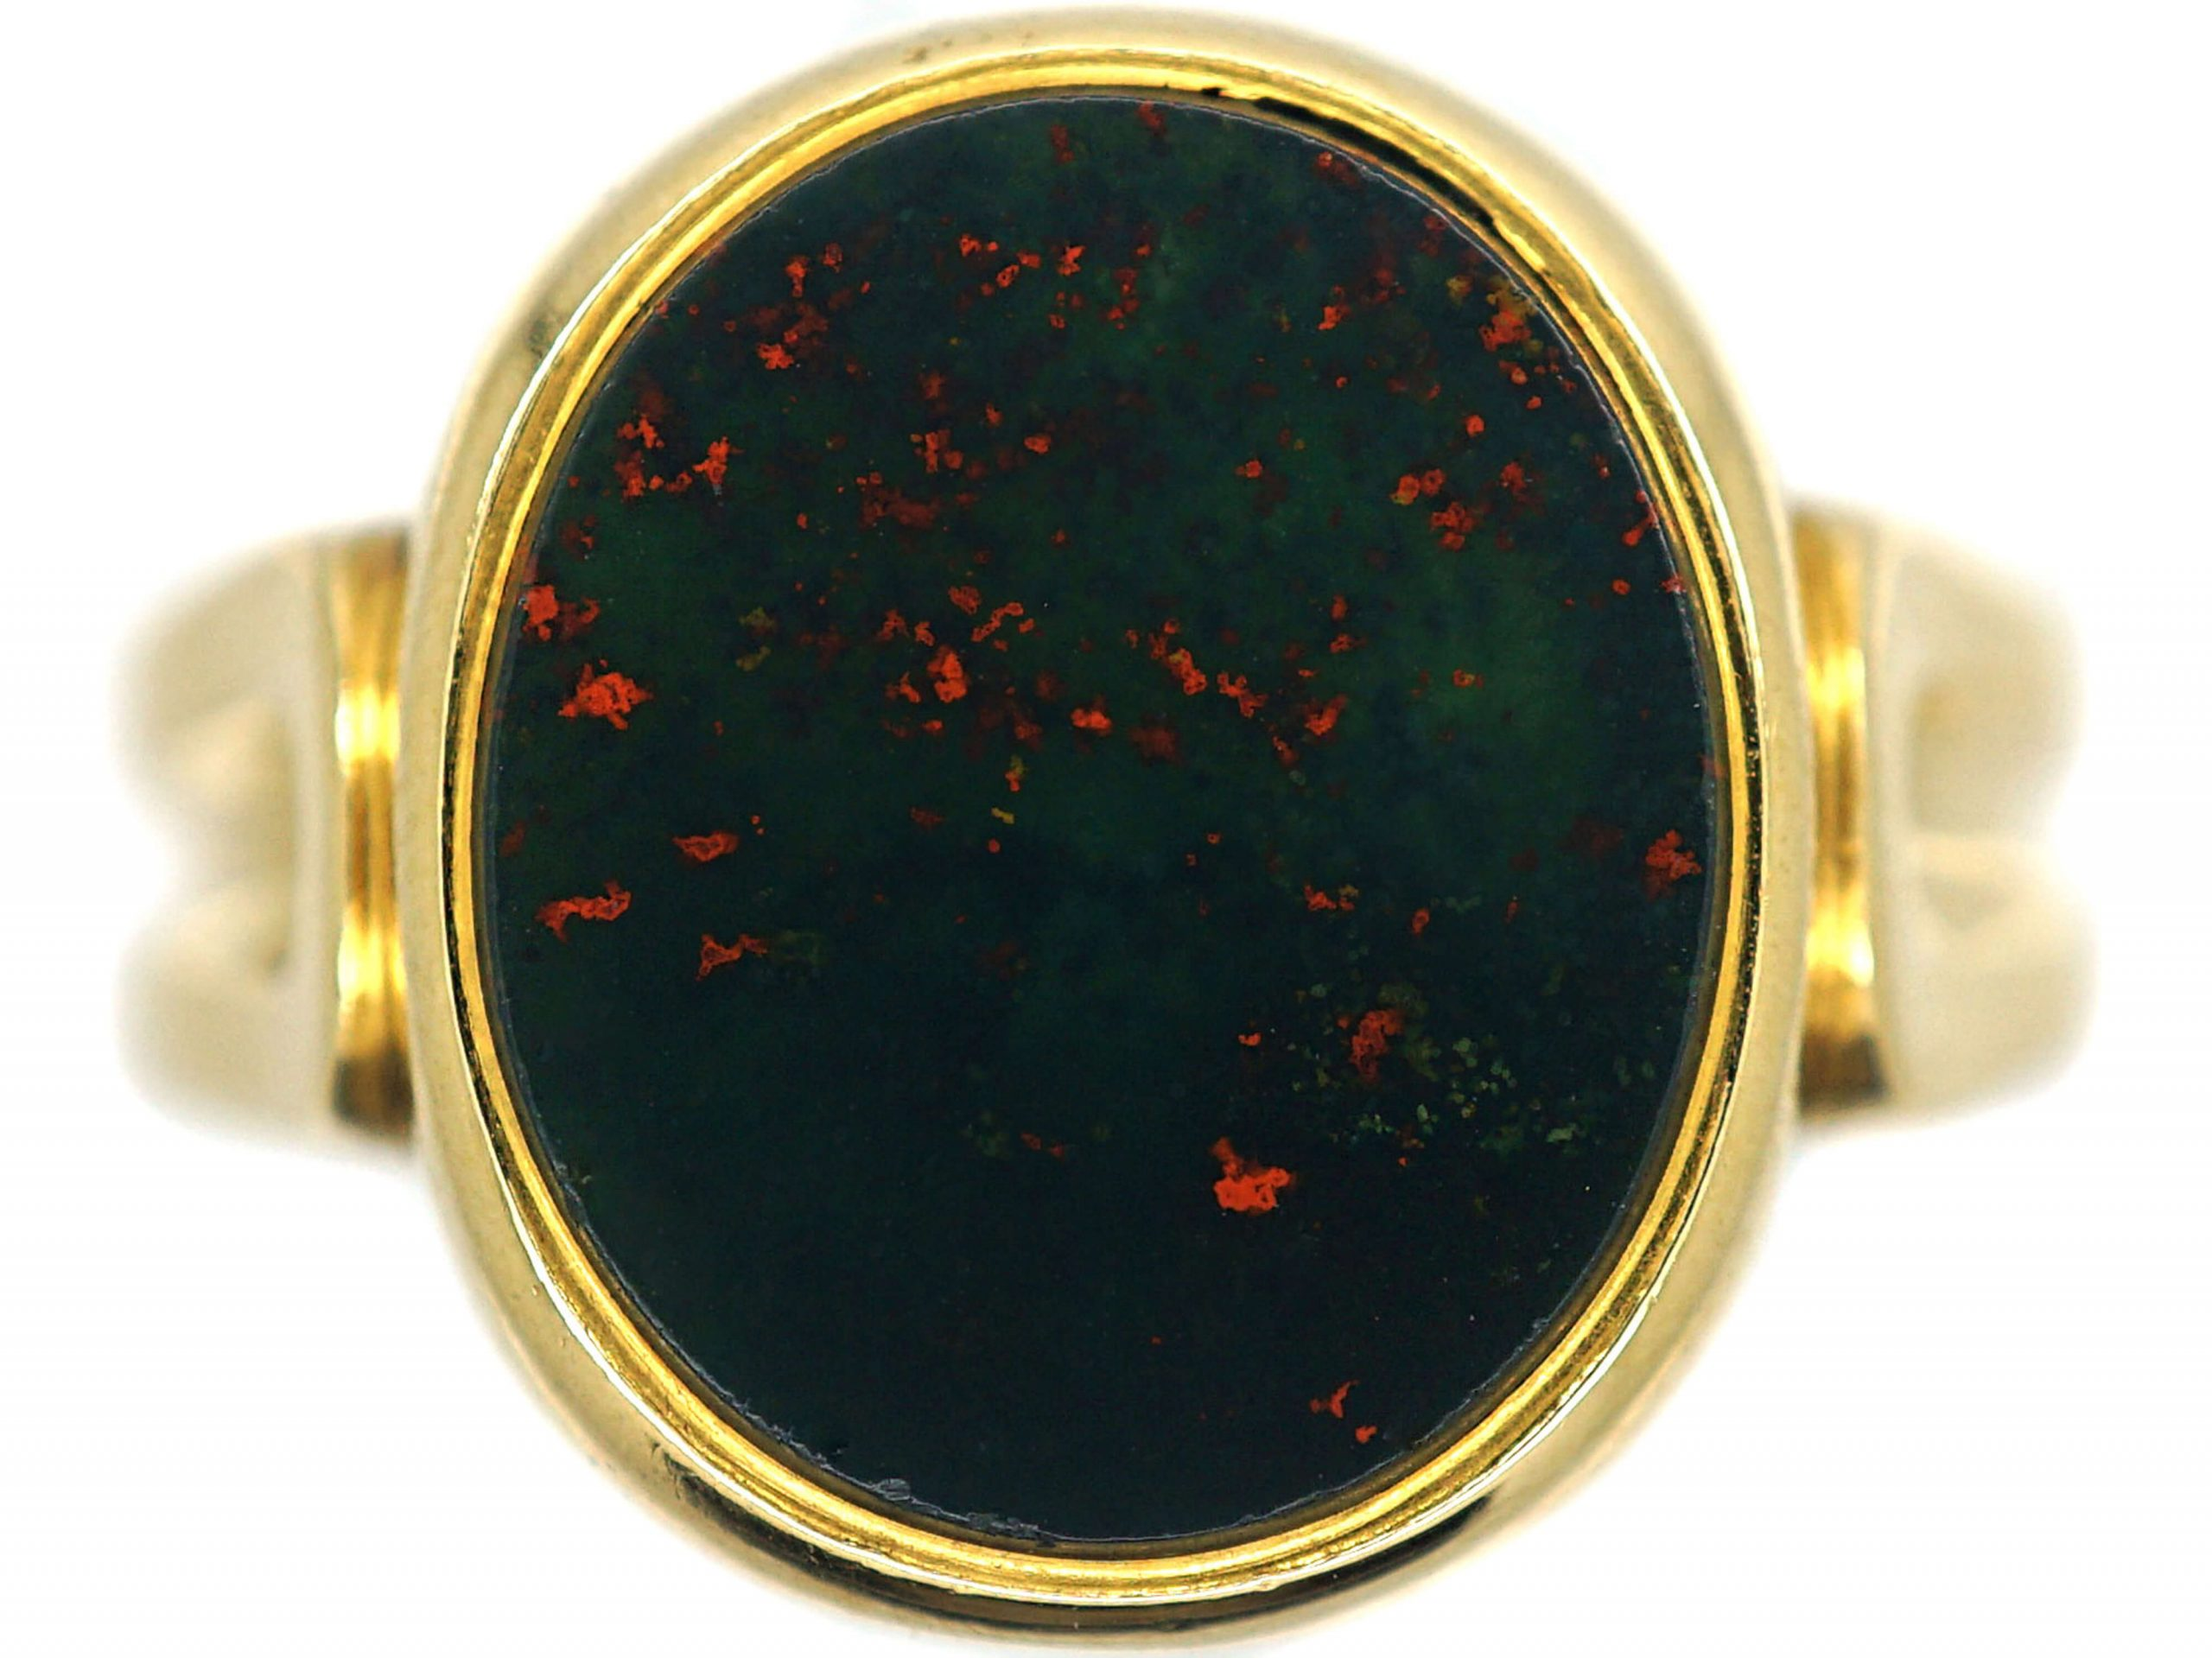 Victorian 18ct Gold & Bloodstone Signet Ring with Fluted Shank by Charles Green